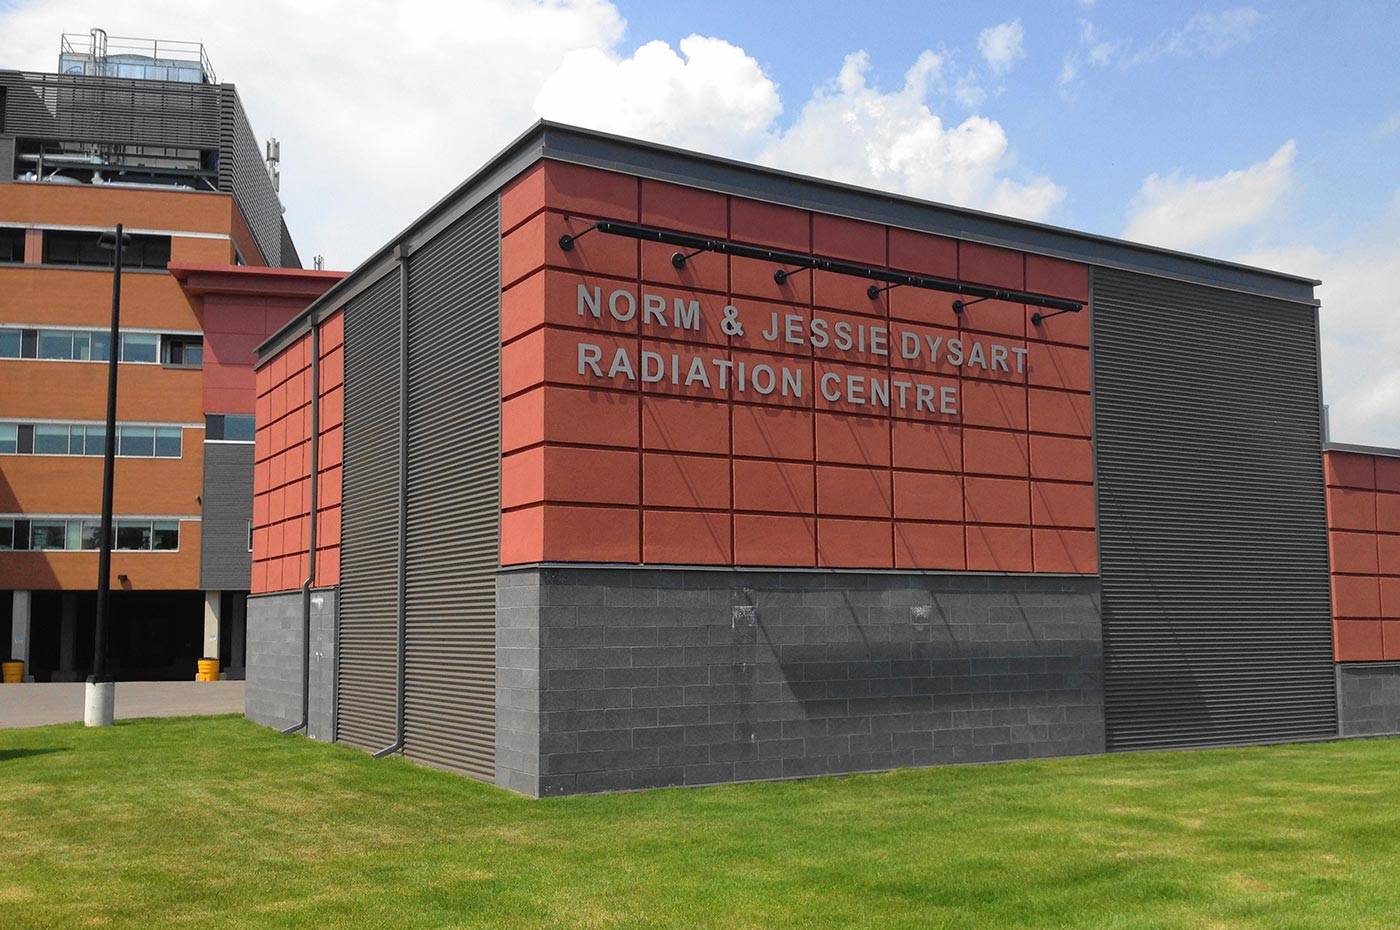 Norm & Jessie Dysart Radiation Centre